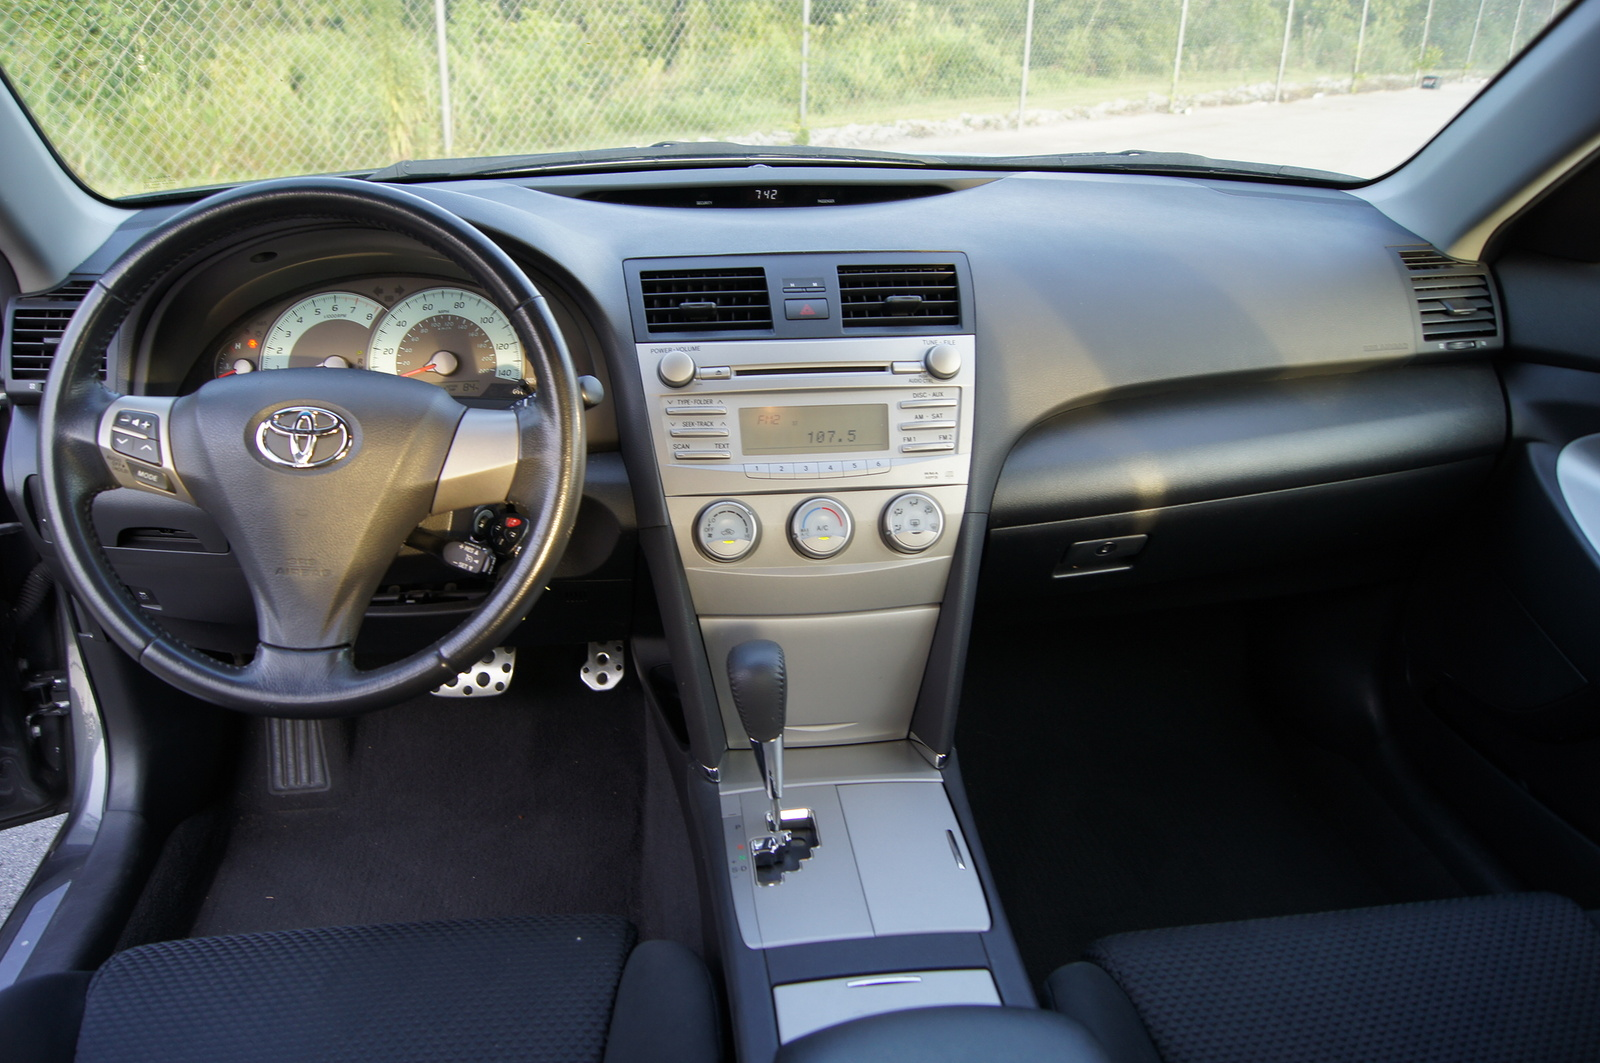 2011 Toyota Camry - Pictures